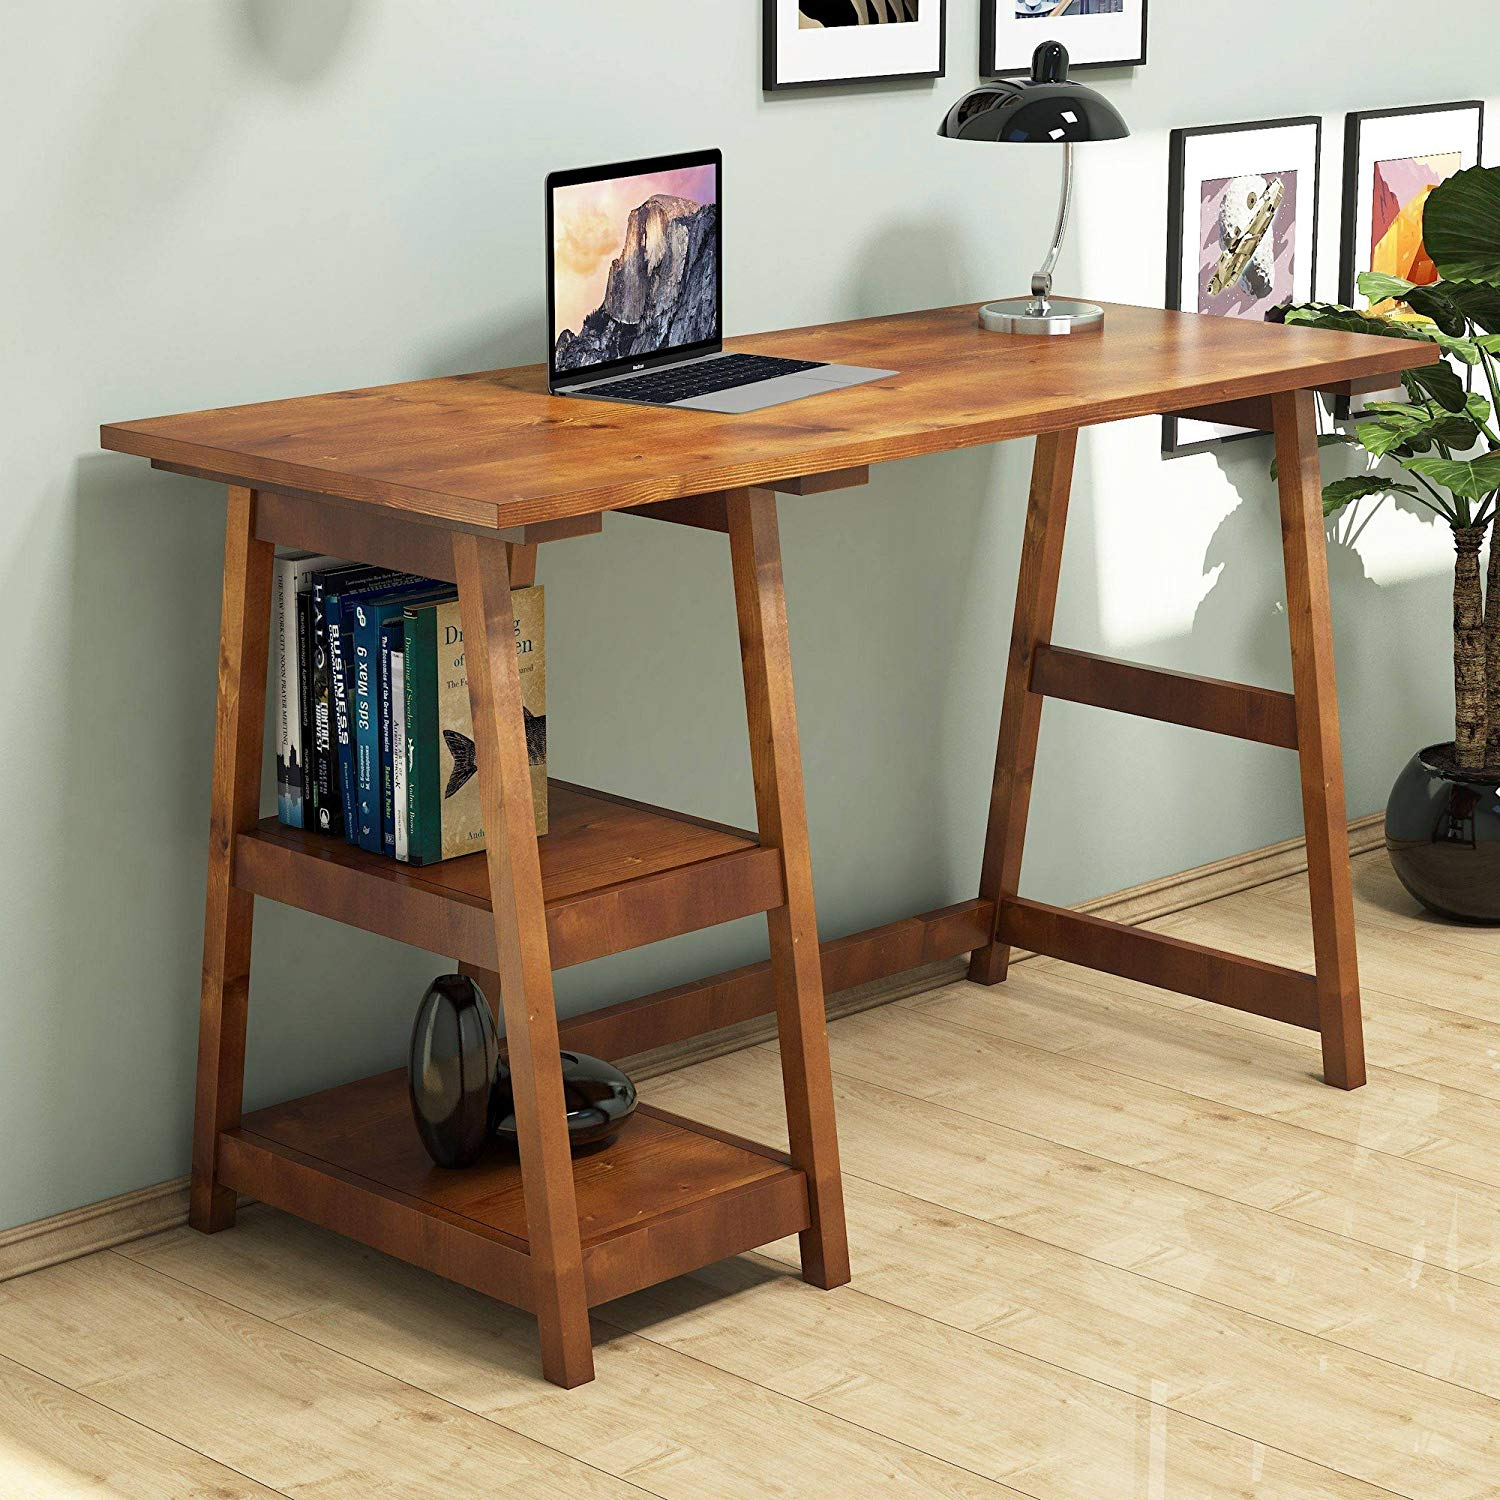 Writing Computer Desk Modern & Simple Brown Wooden Decorative Useful Stable Bold Stylish Study Desk Industrial Style Study & Laptop Table Home, Office, Living Room, Study Room Walnut